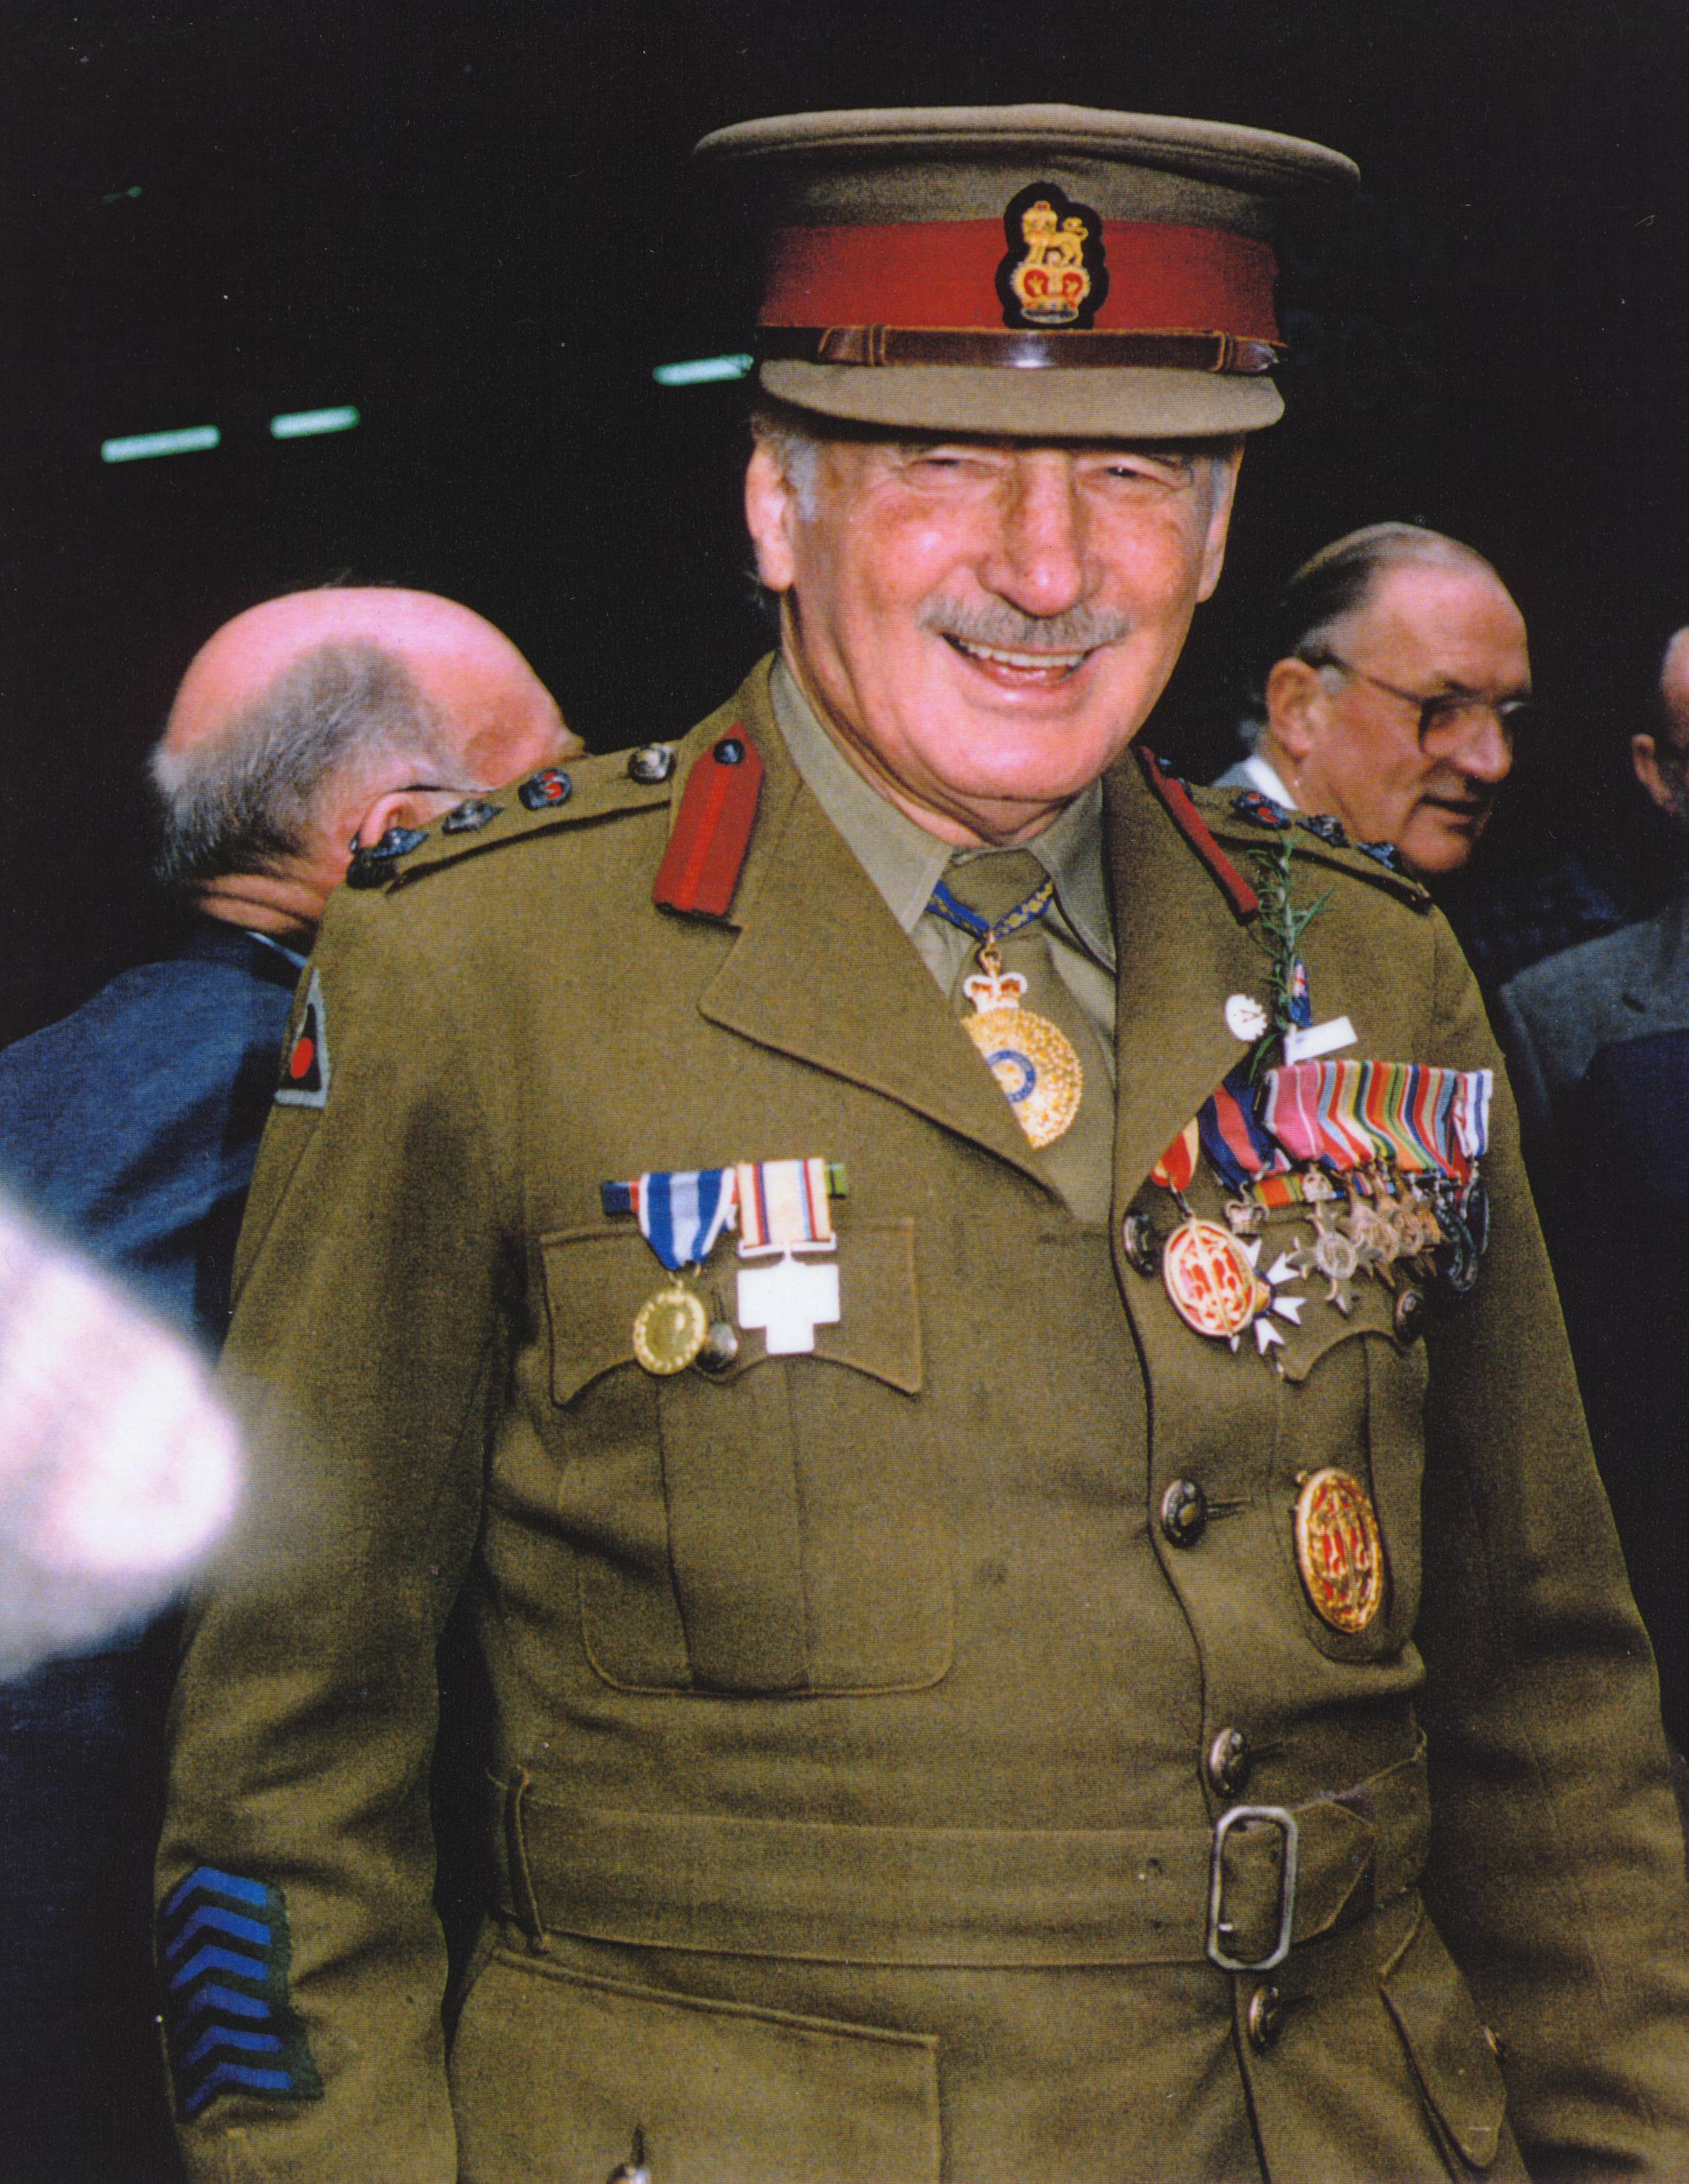 Colonel Sir Ernest Edward 'Weary' Dunlop